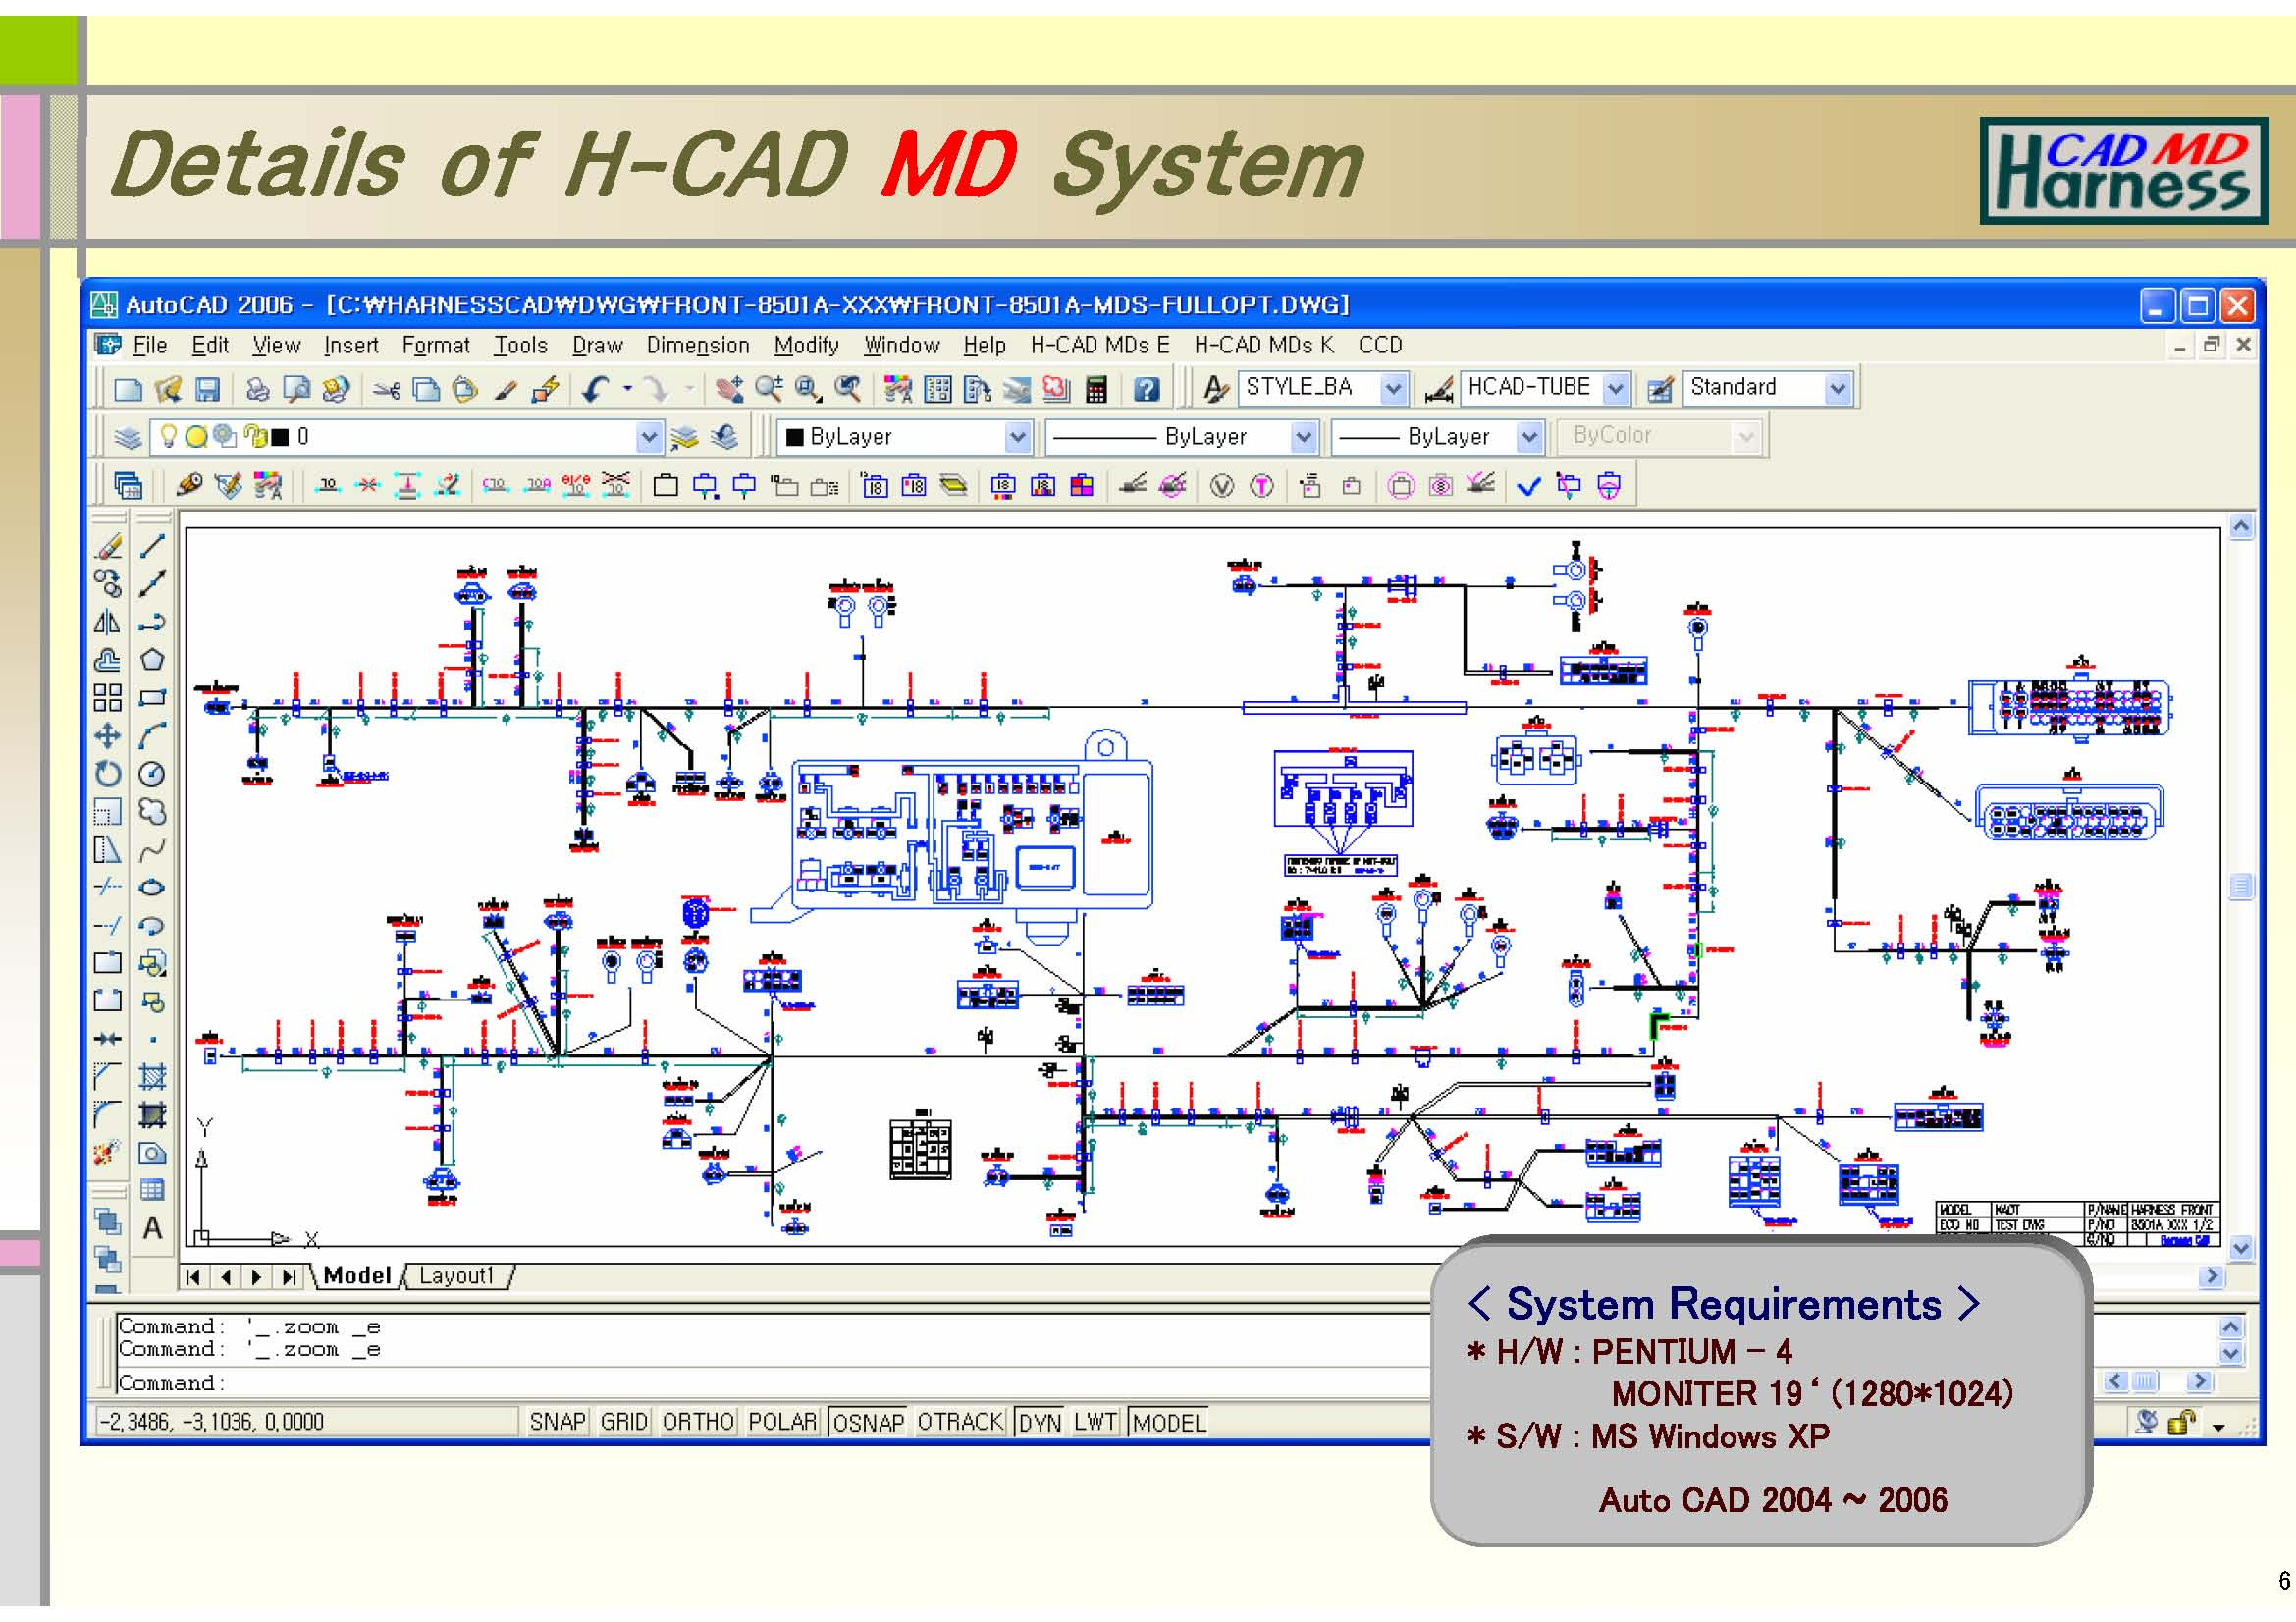 St systems homepage Cad system